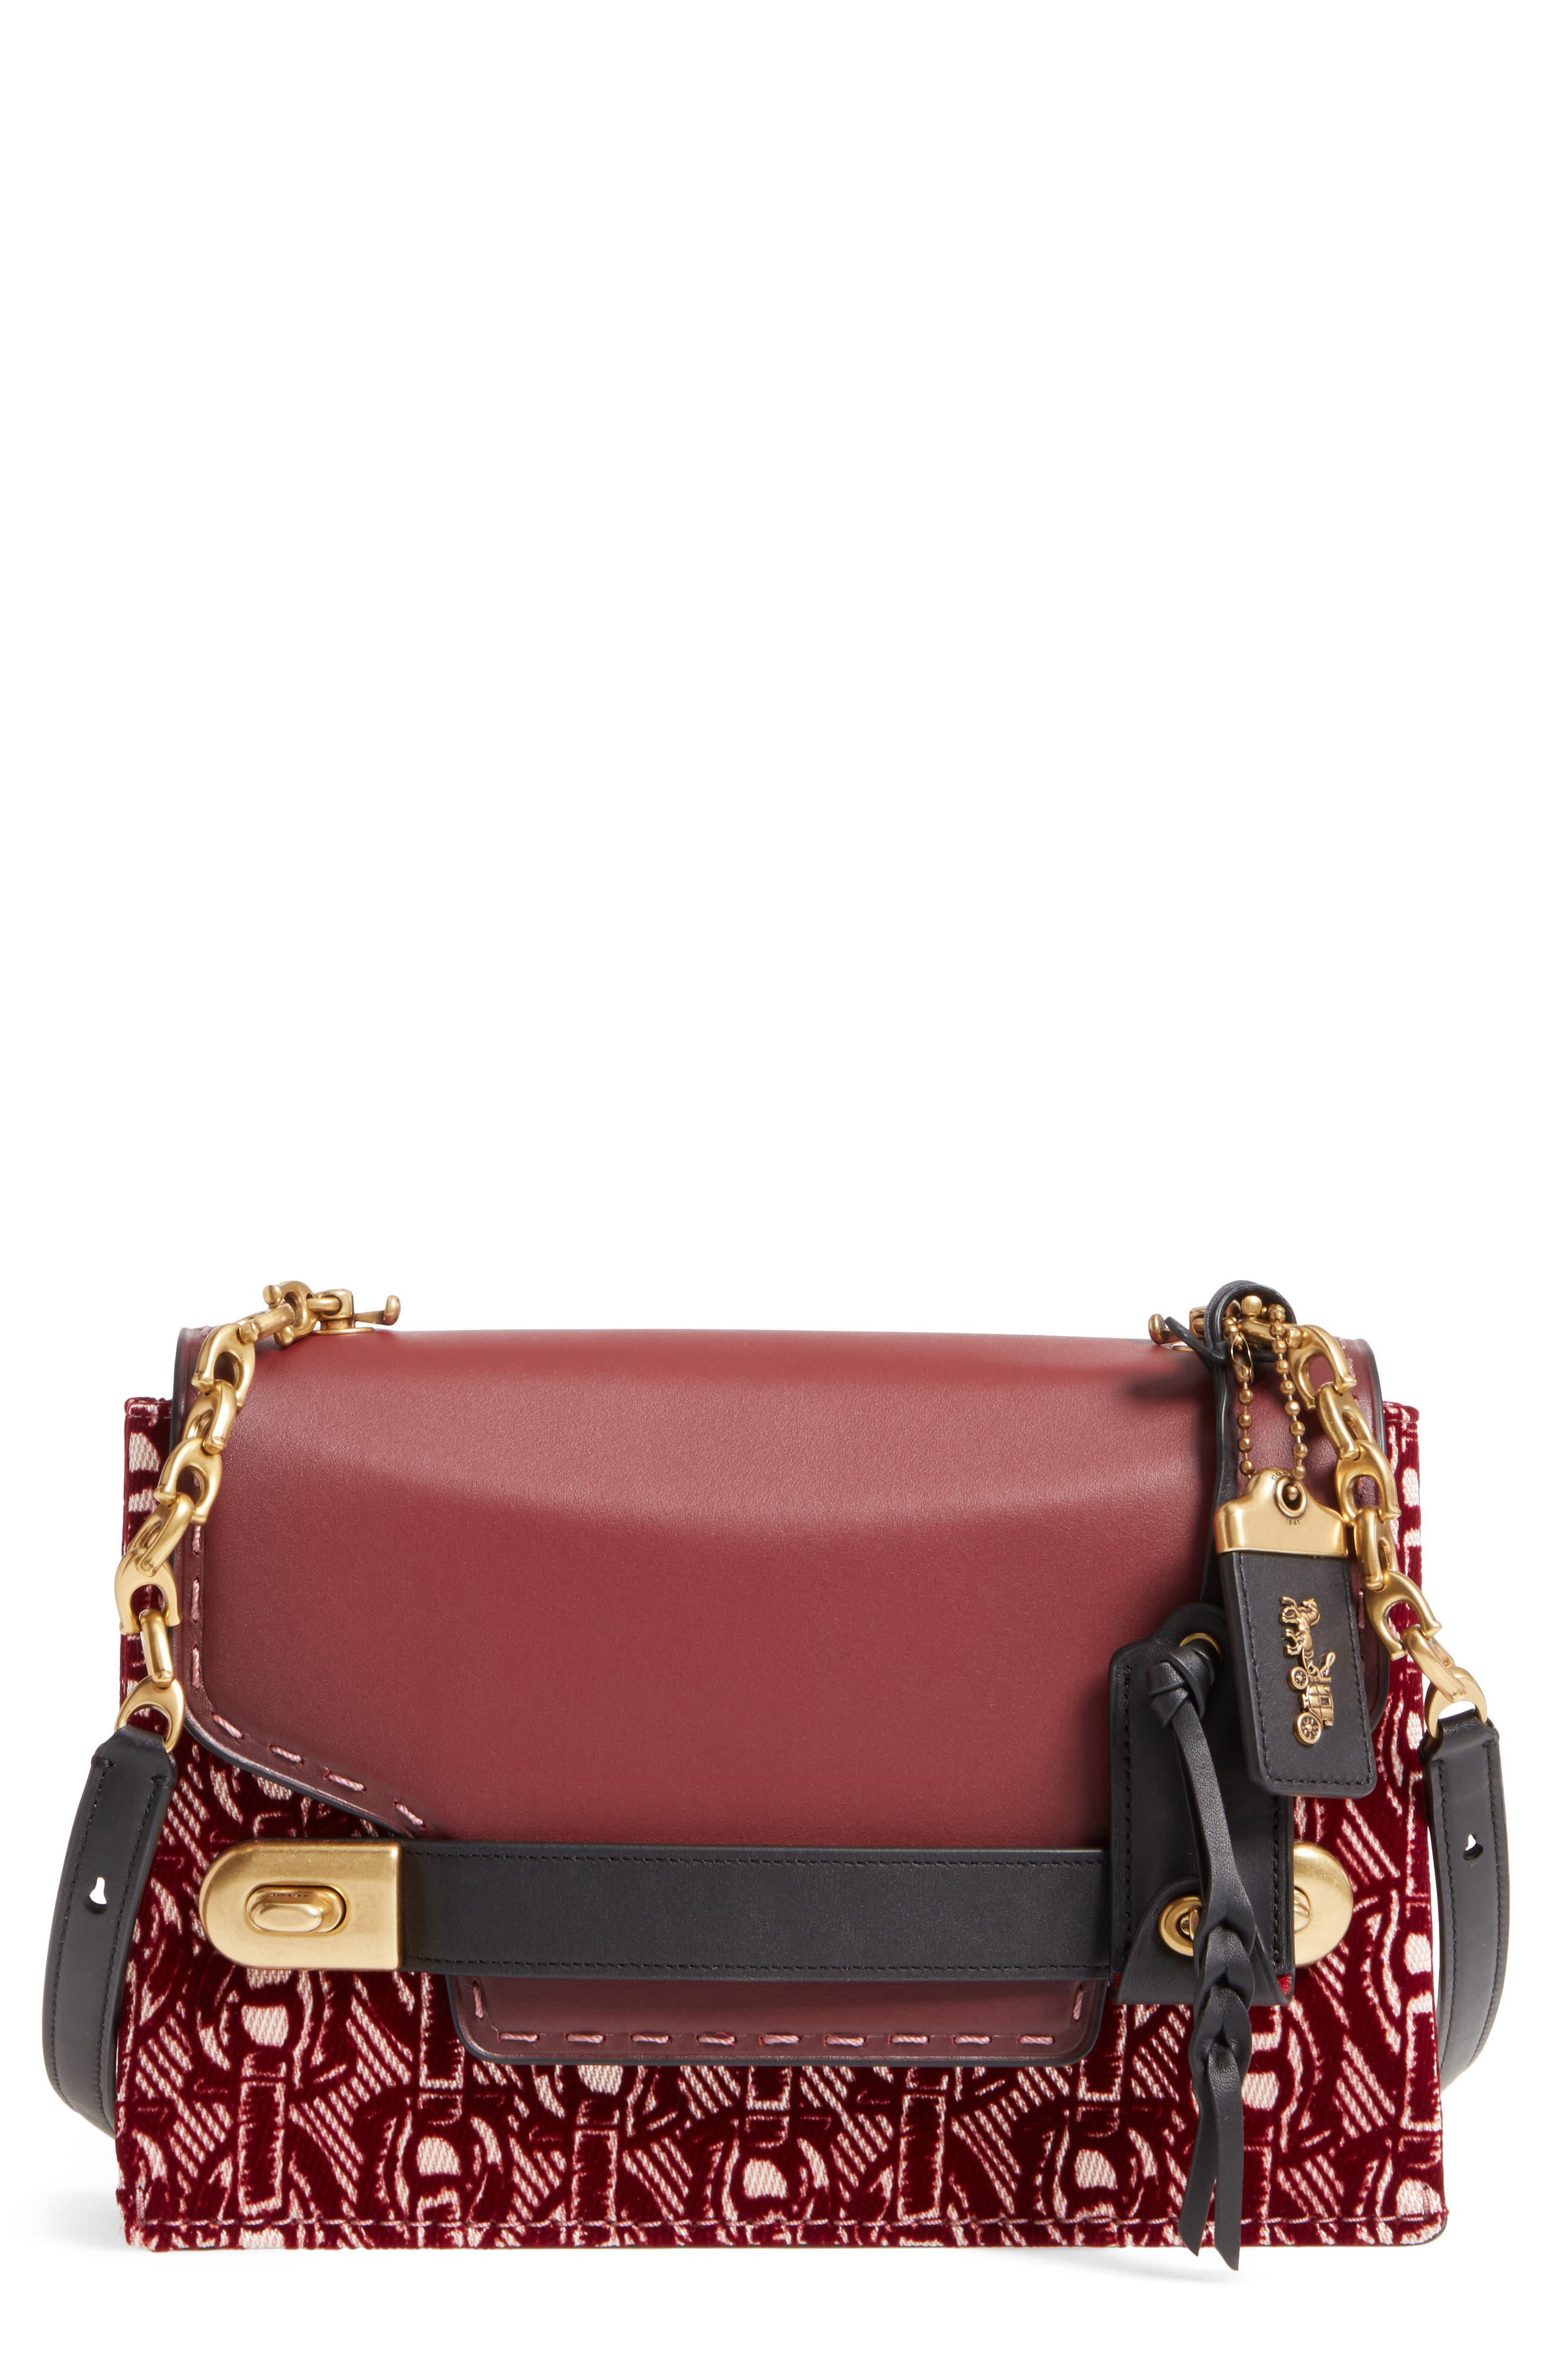 Swagger Chain Leather Crossbody Bag,                             Main thumbnail 1, color,                             930